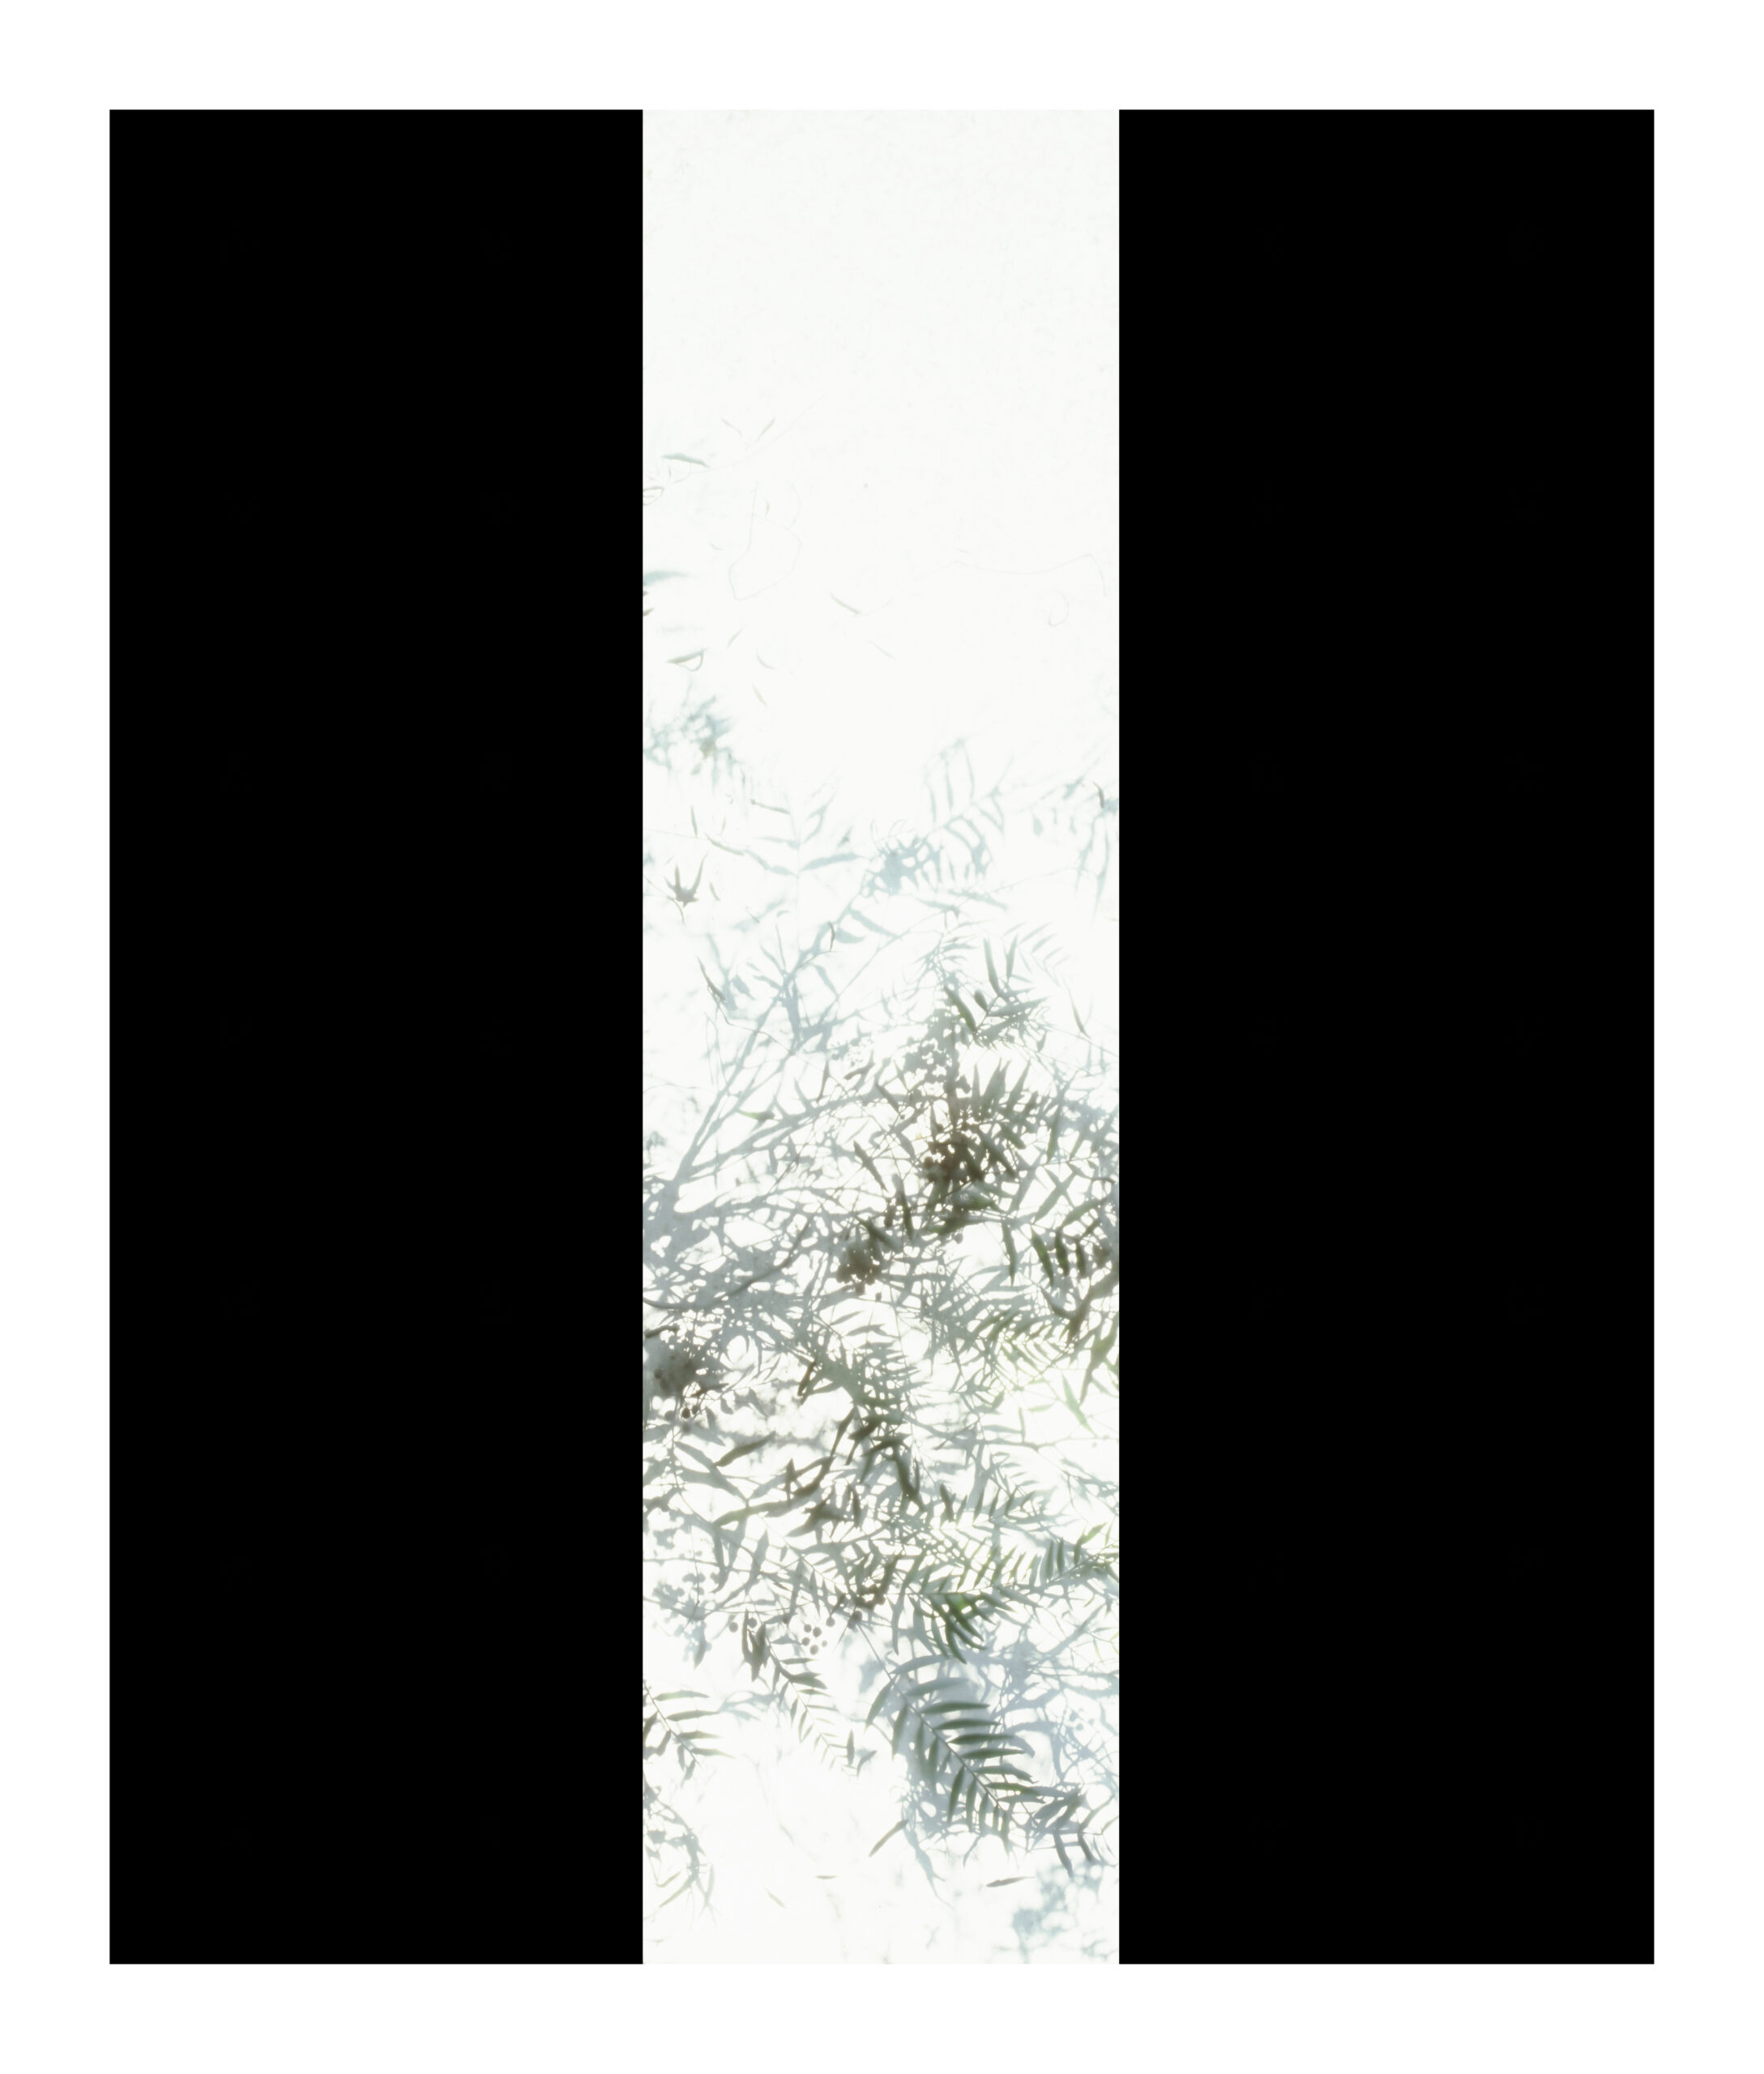 As part of the Autoritratto exhibition by Luisa Lambri, two black borders are left and right of an over-exposed image of leaves on a branch